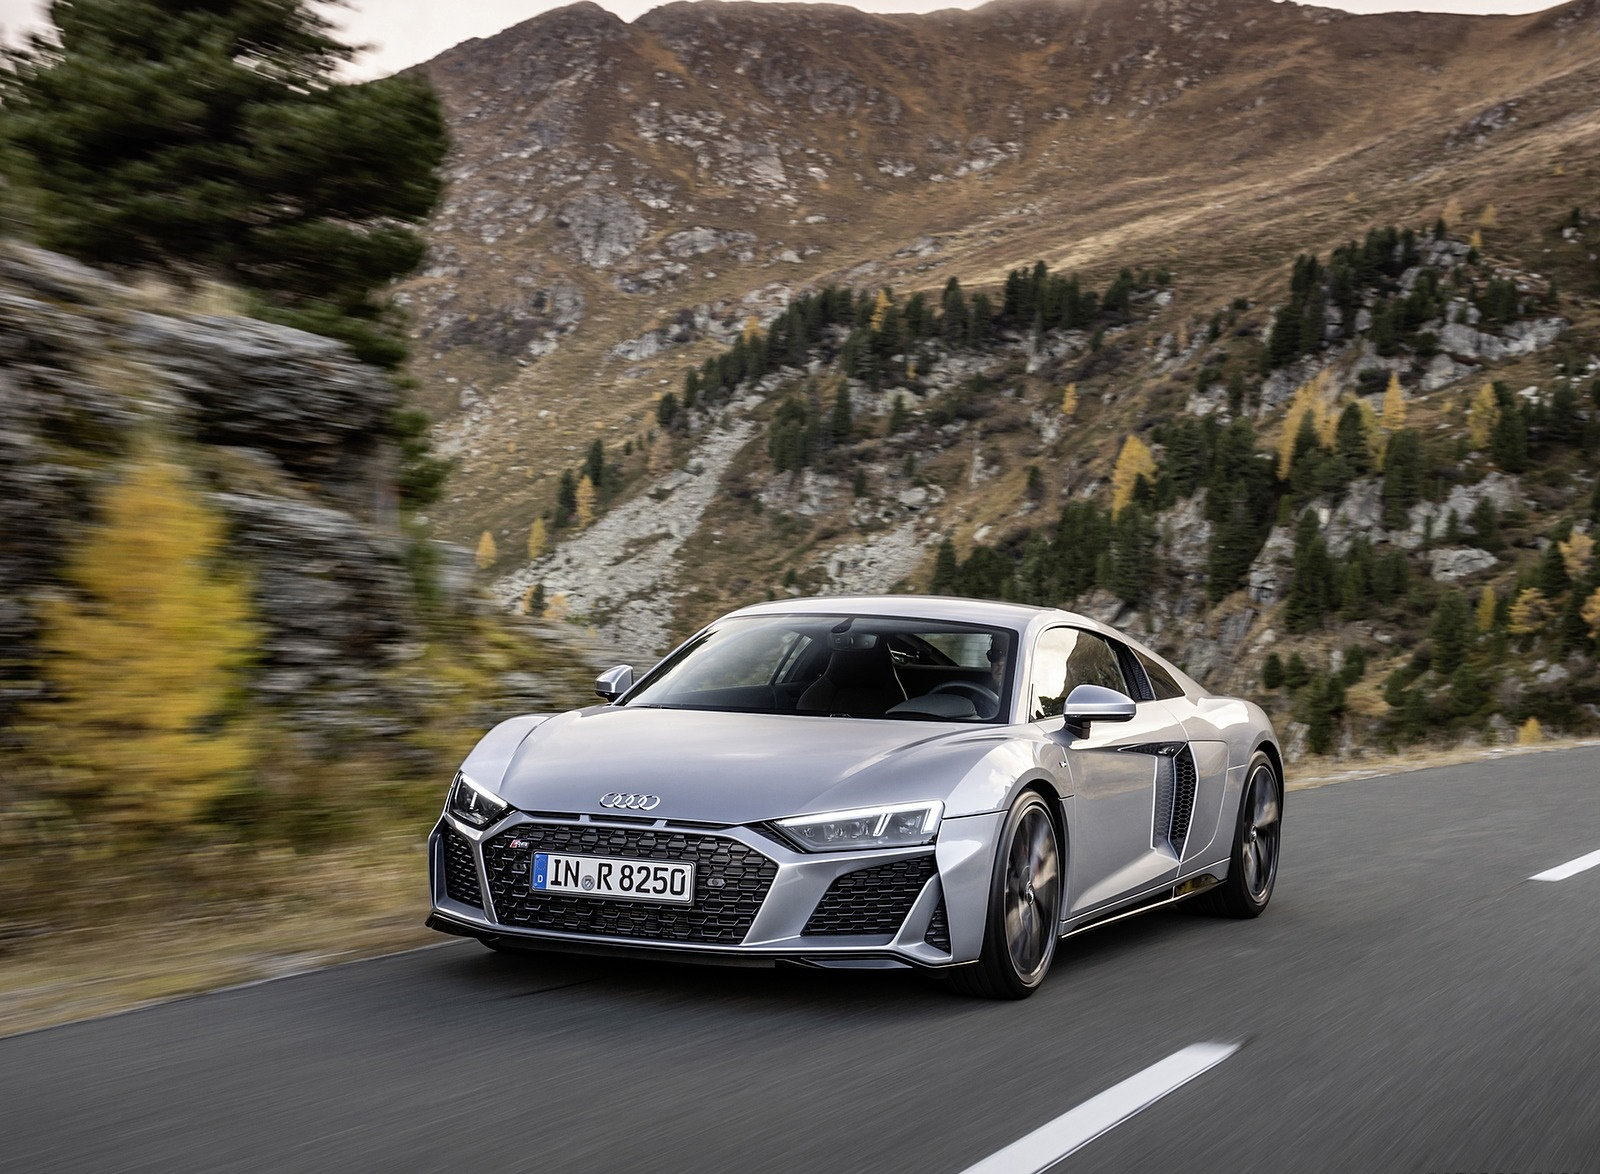 2020 Audi R8 V10 RWD Coupe (Color: Florett Silver) Front Three-Quarter Wallpapers (4)